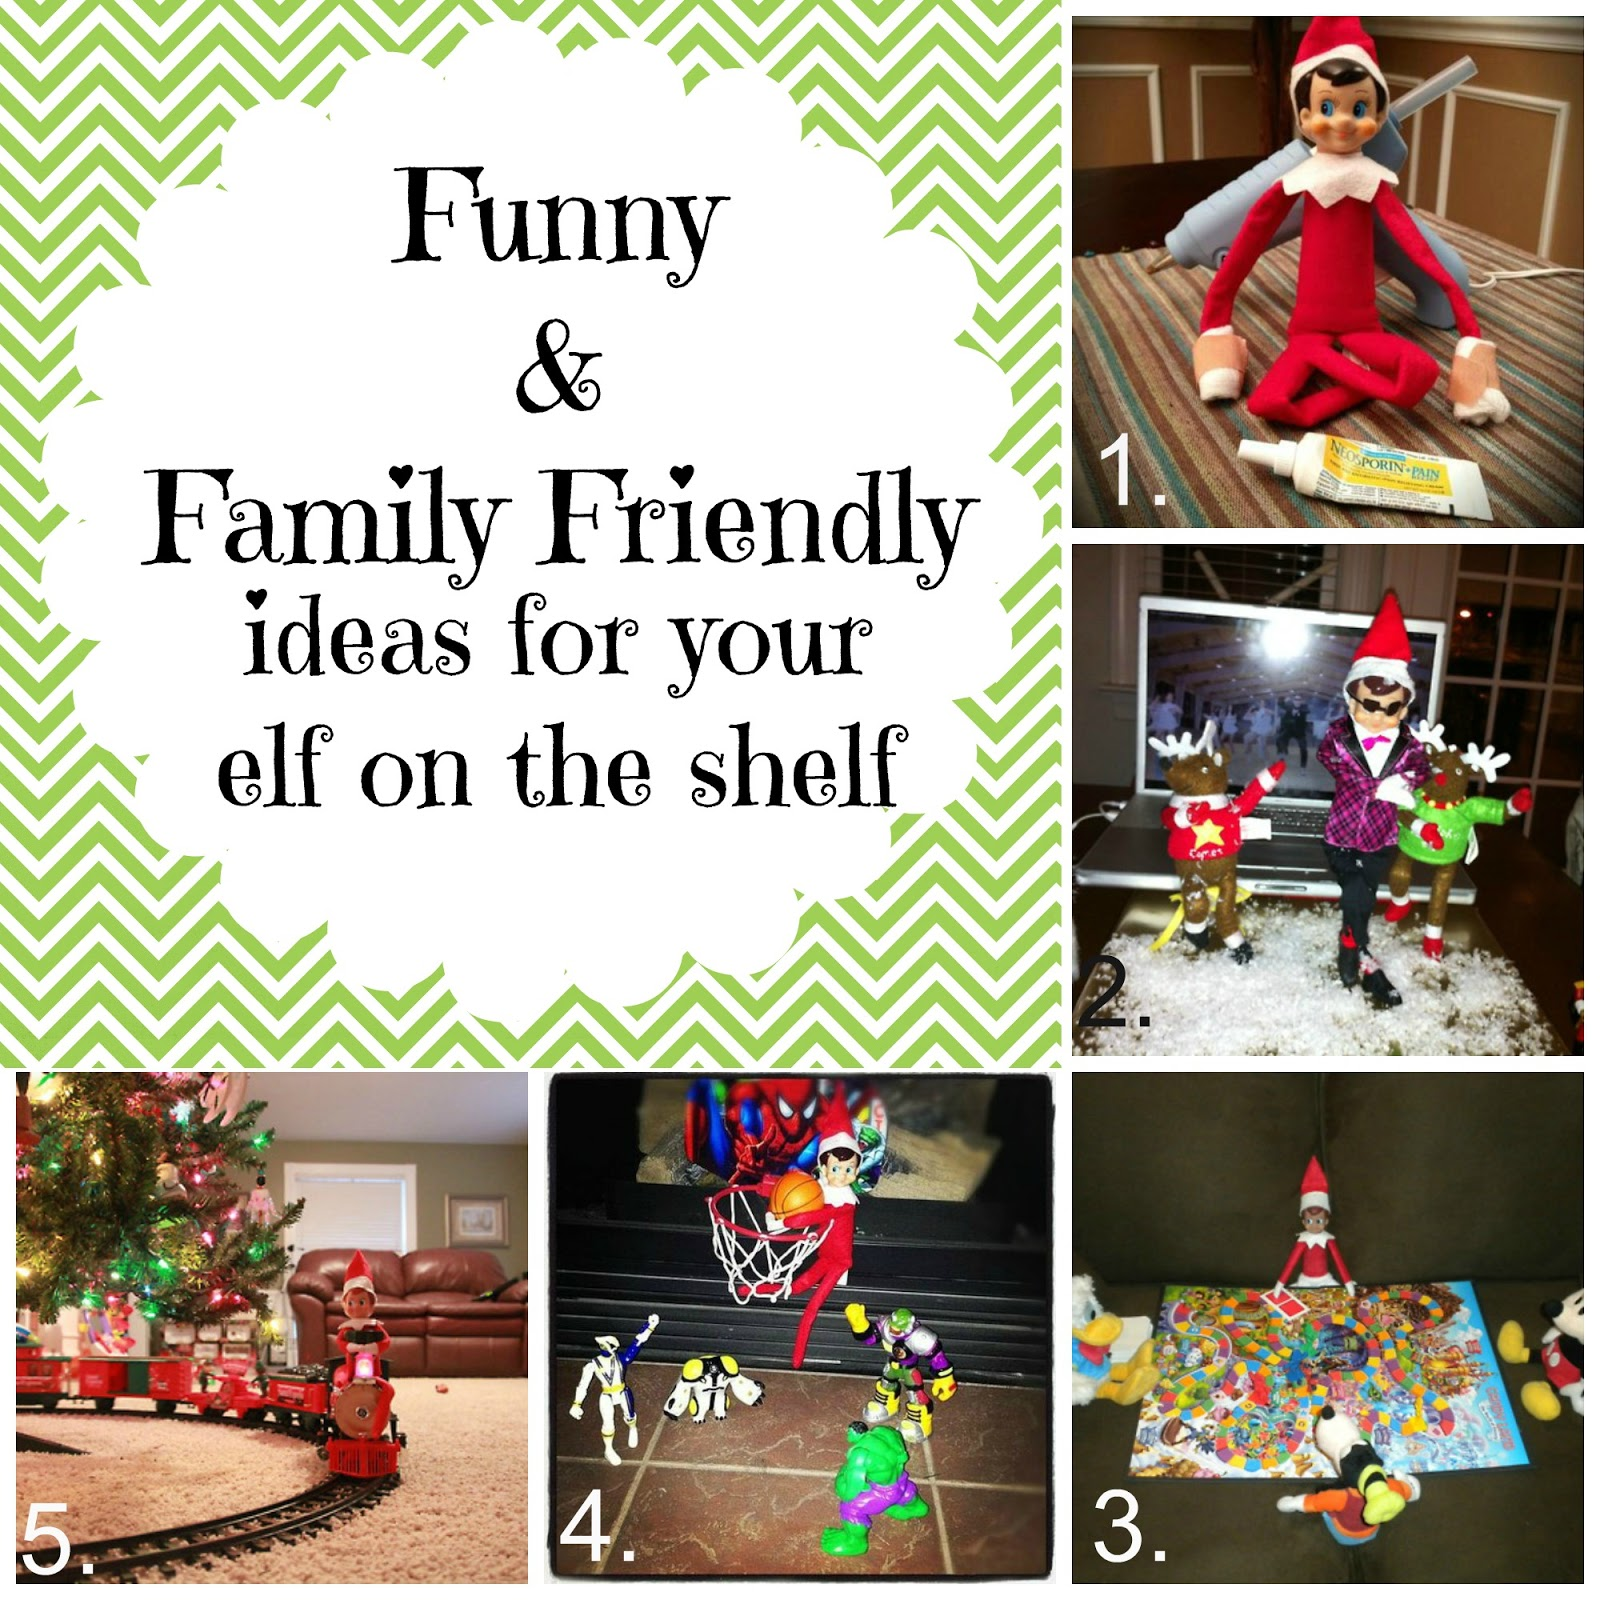 elf on the shelf ideas i am sure i will be checking this site out when december rolls around again make sure you bookmark it and check it out for